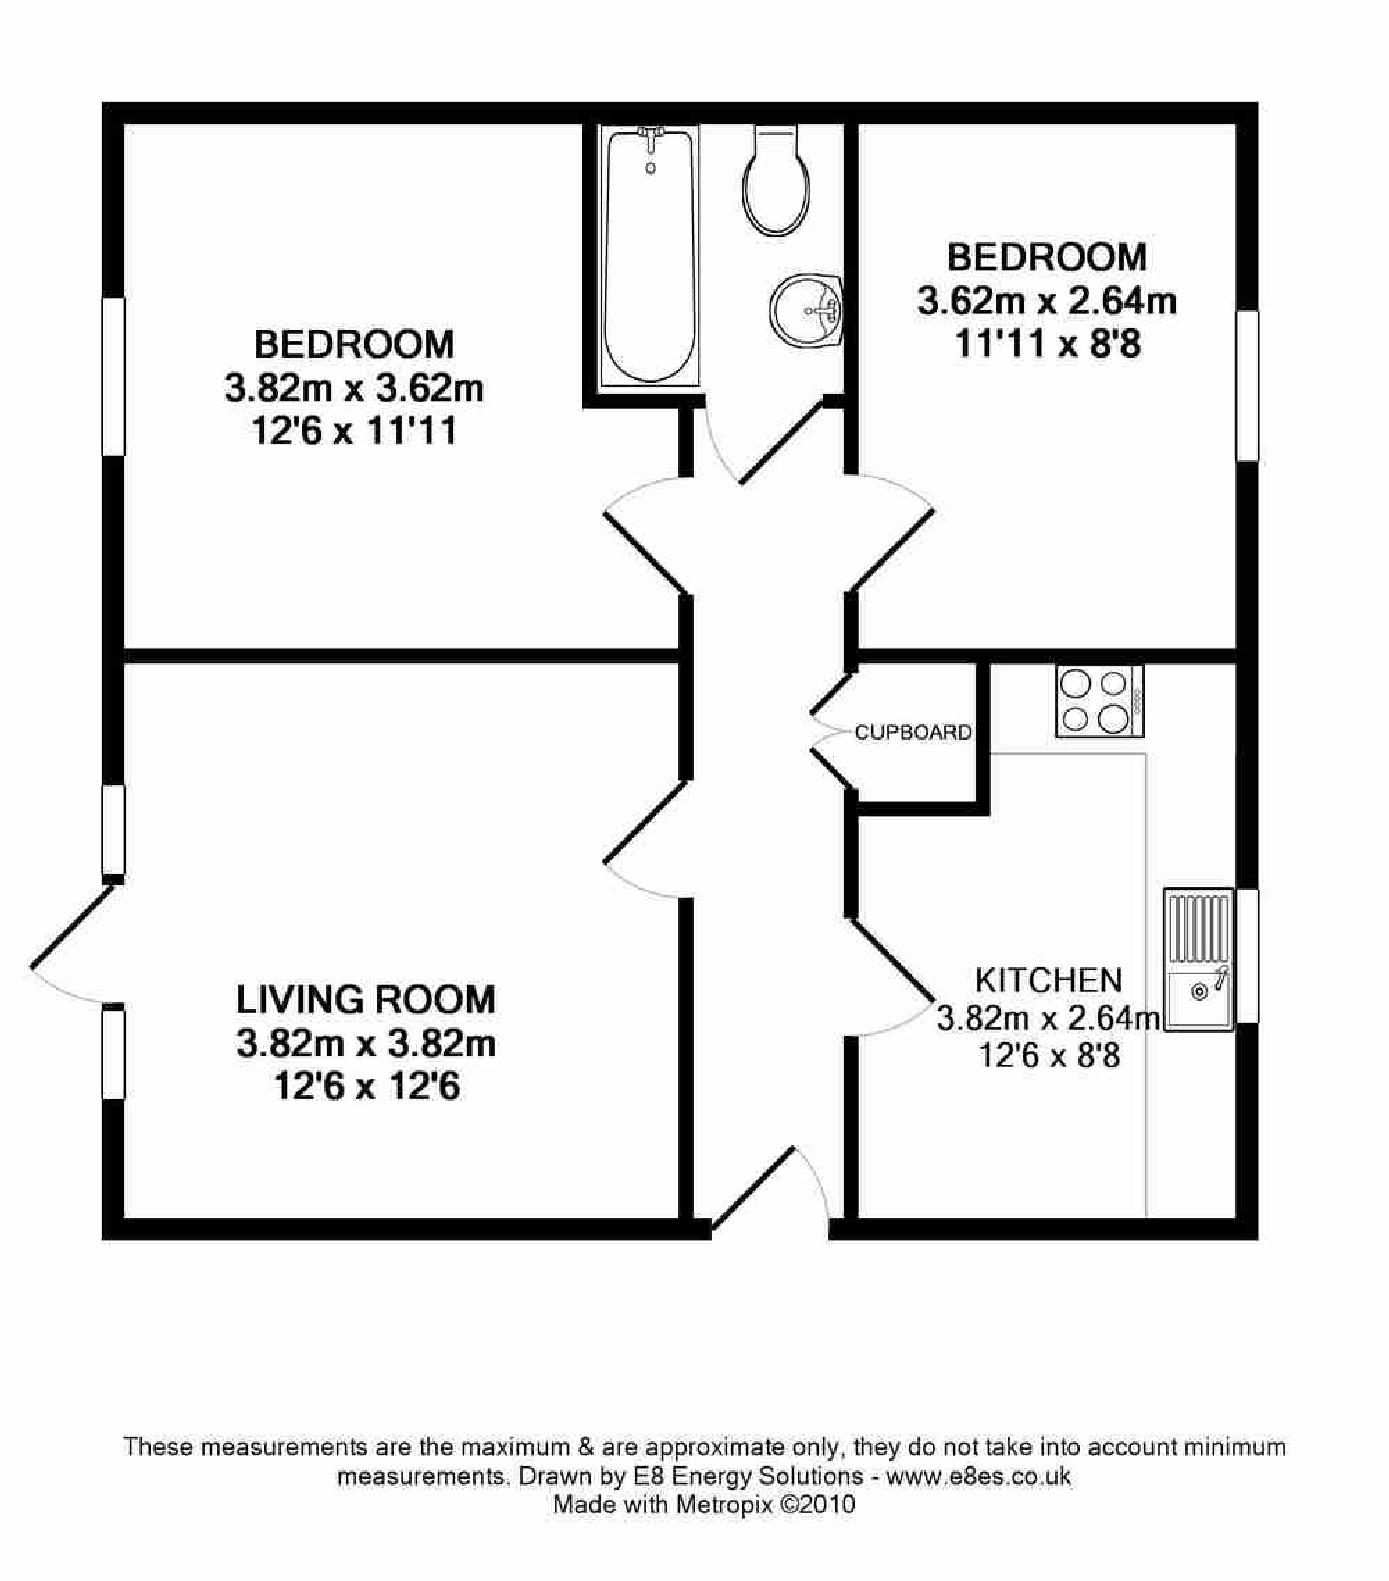 Marina way abingdon ox14 ref 6288 abingdon for Building plan for two bedroom flat